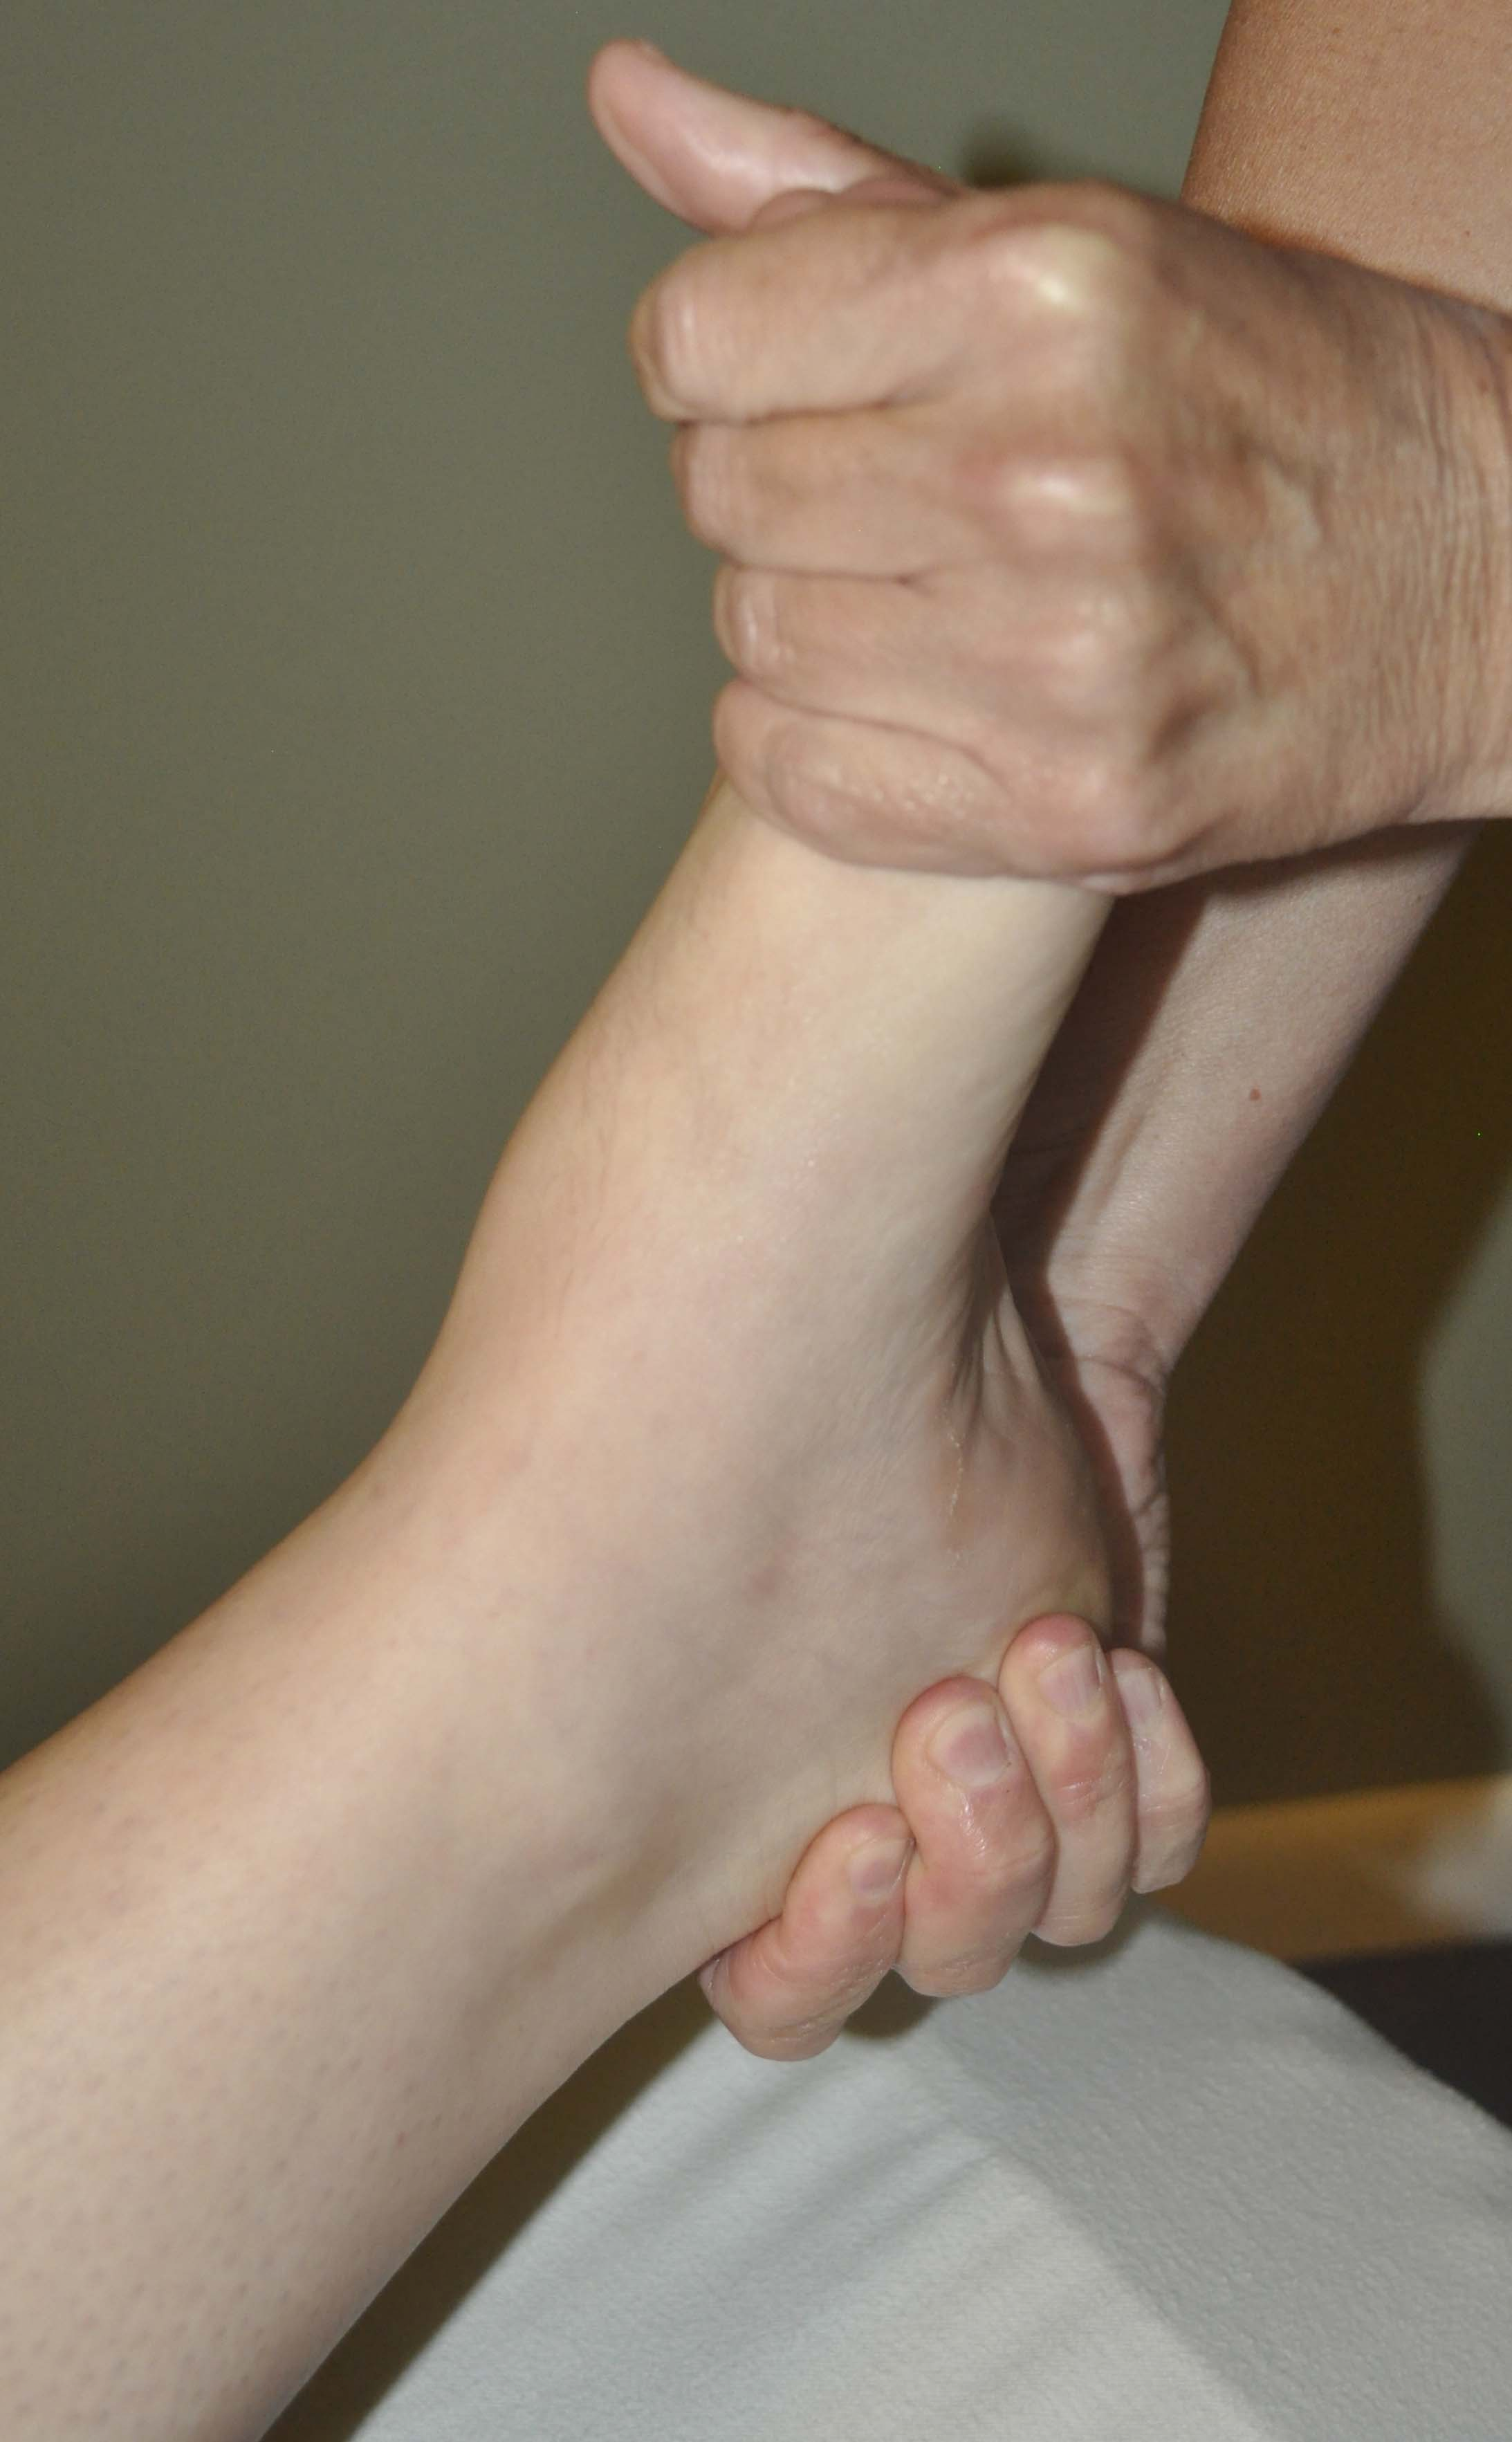 Easing pain of Plantar Fasciitis